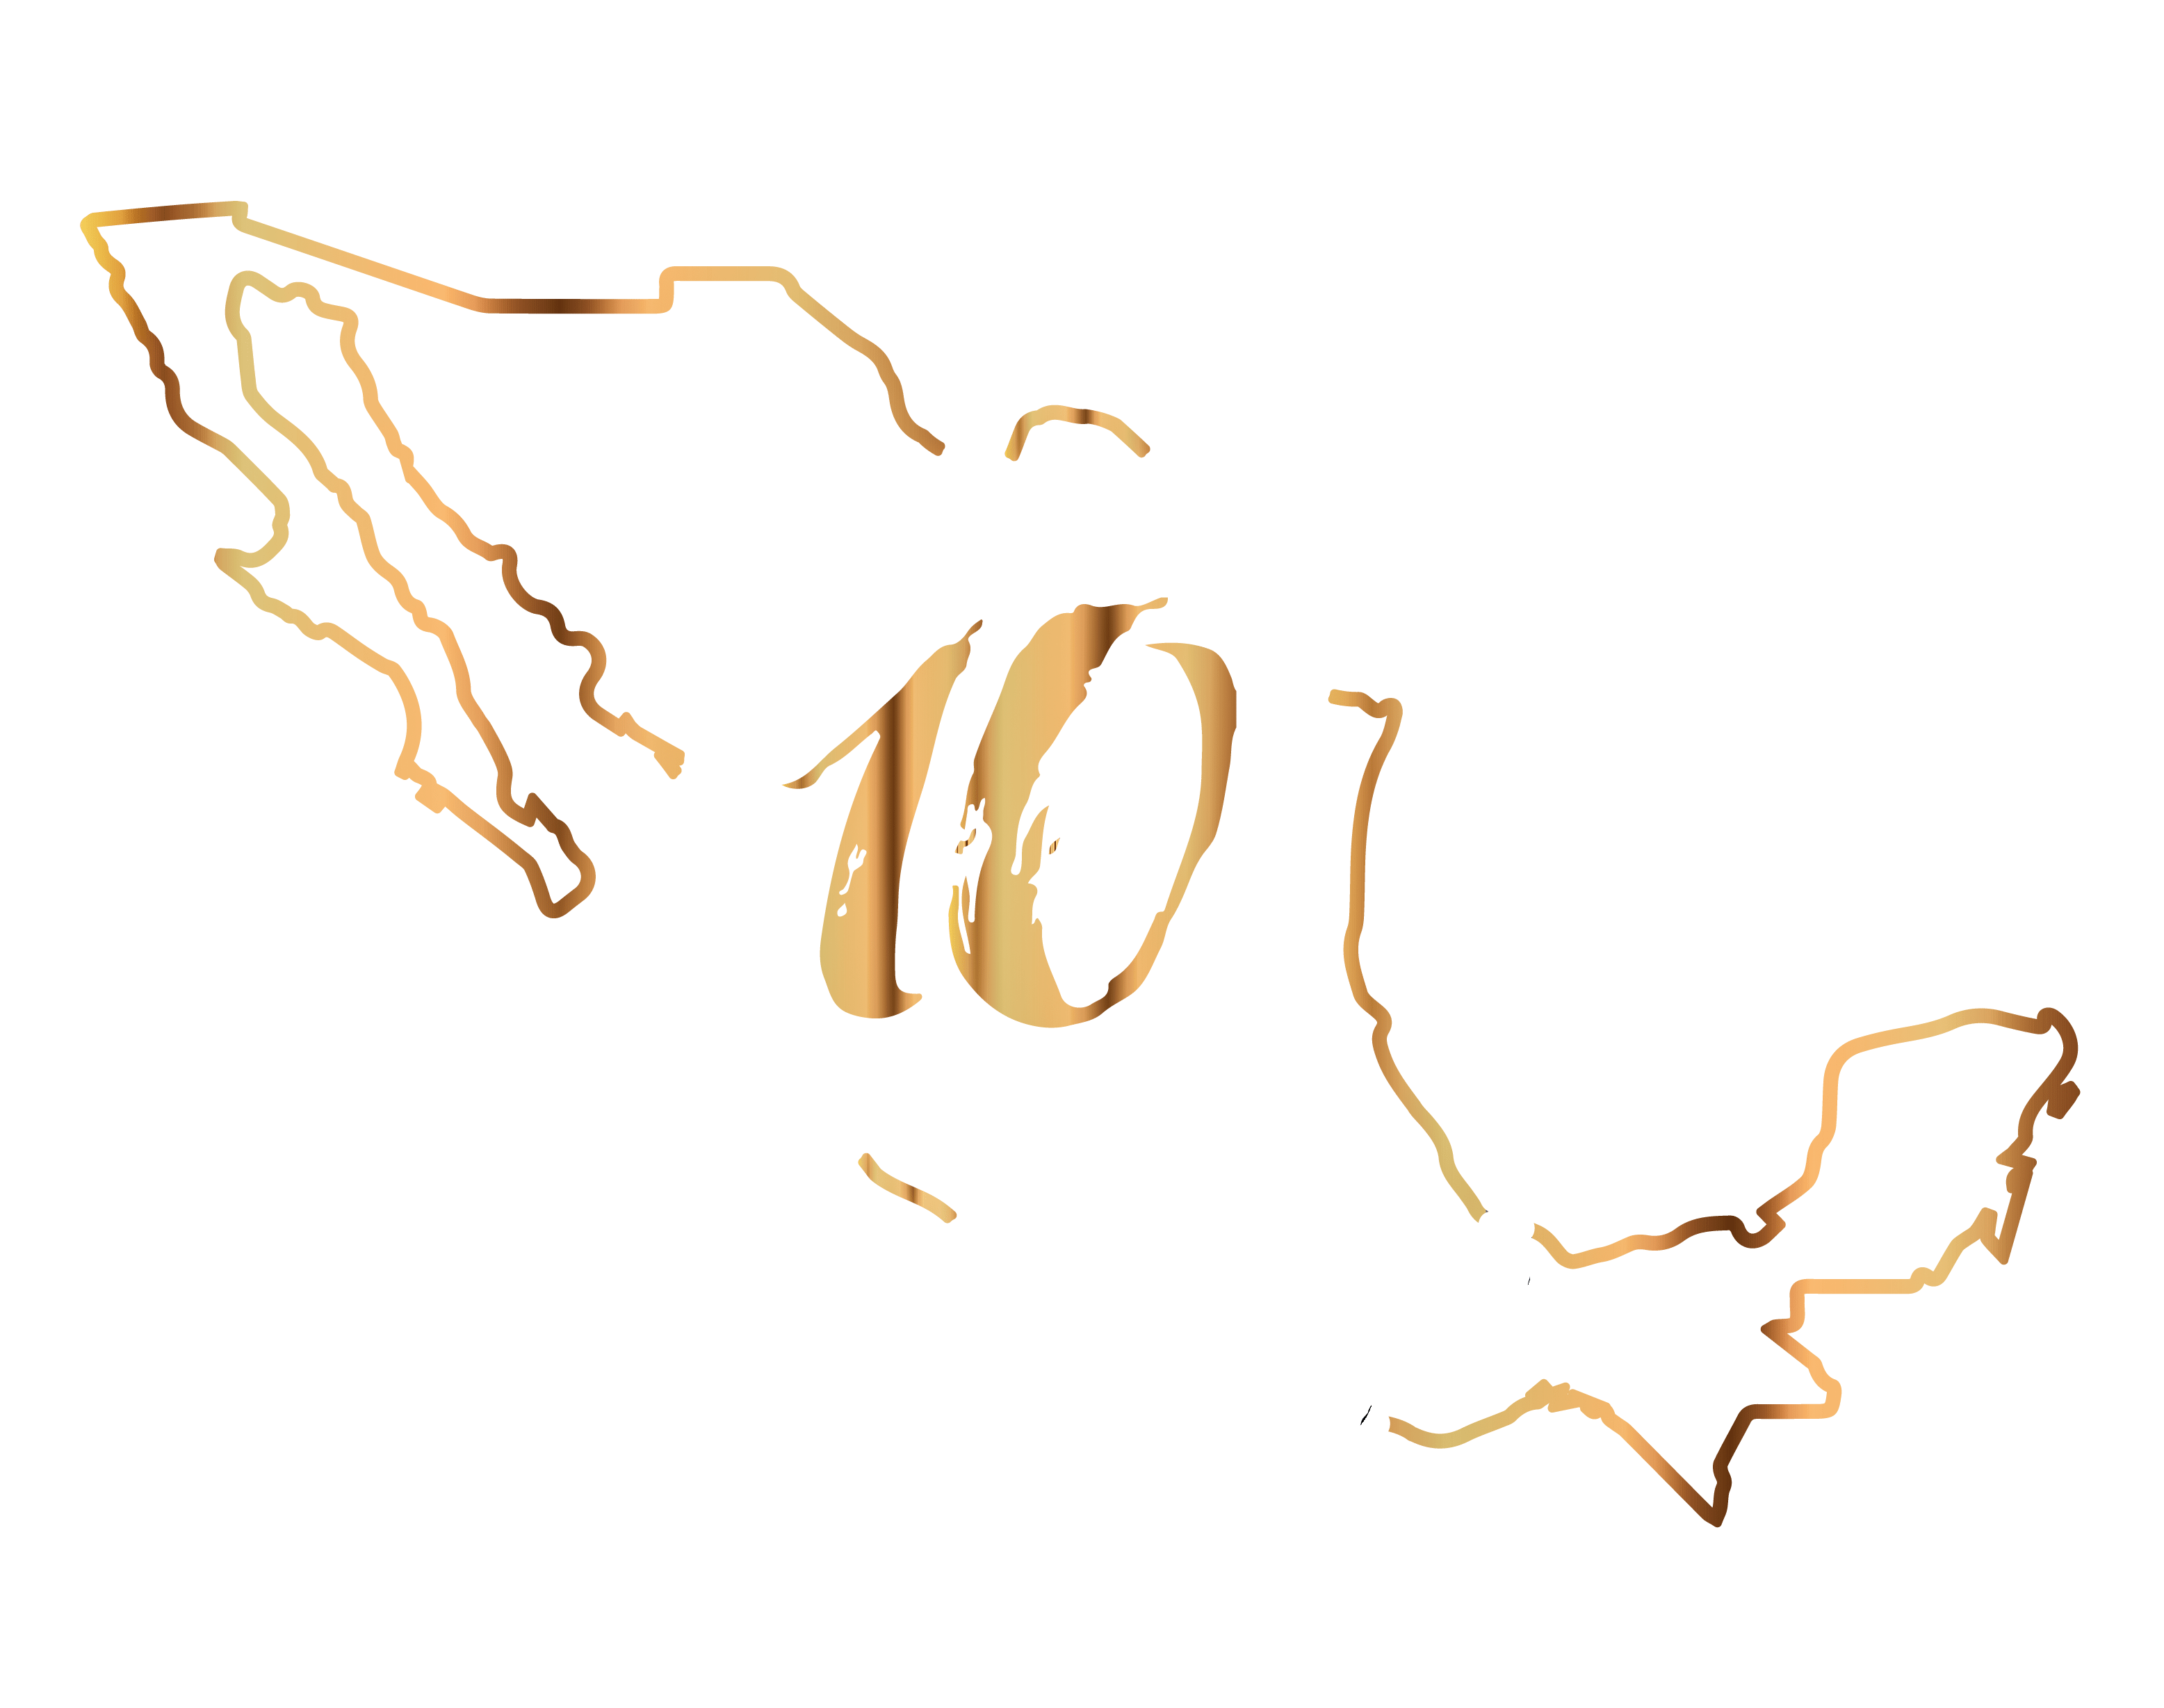 10experience